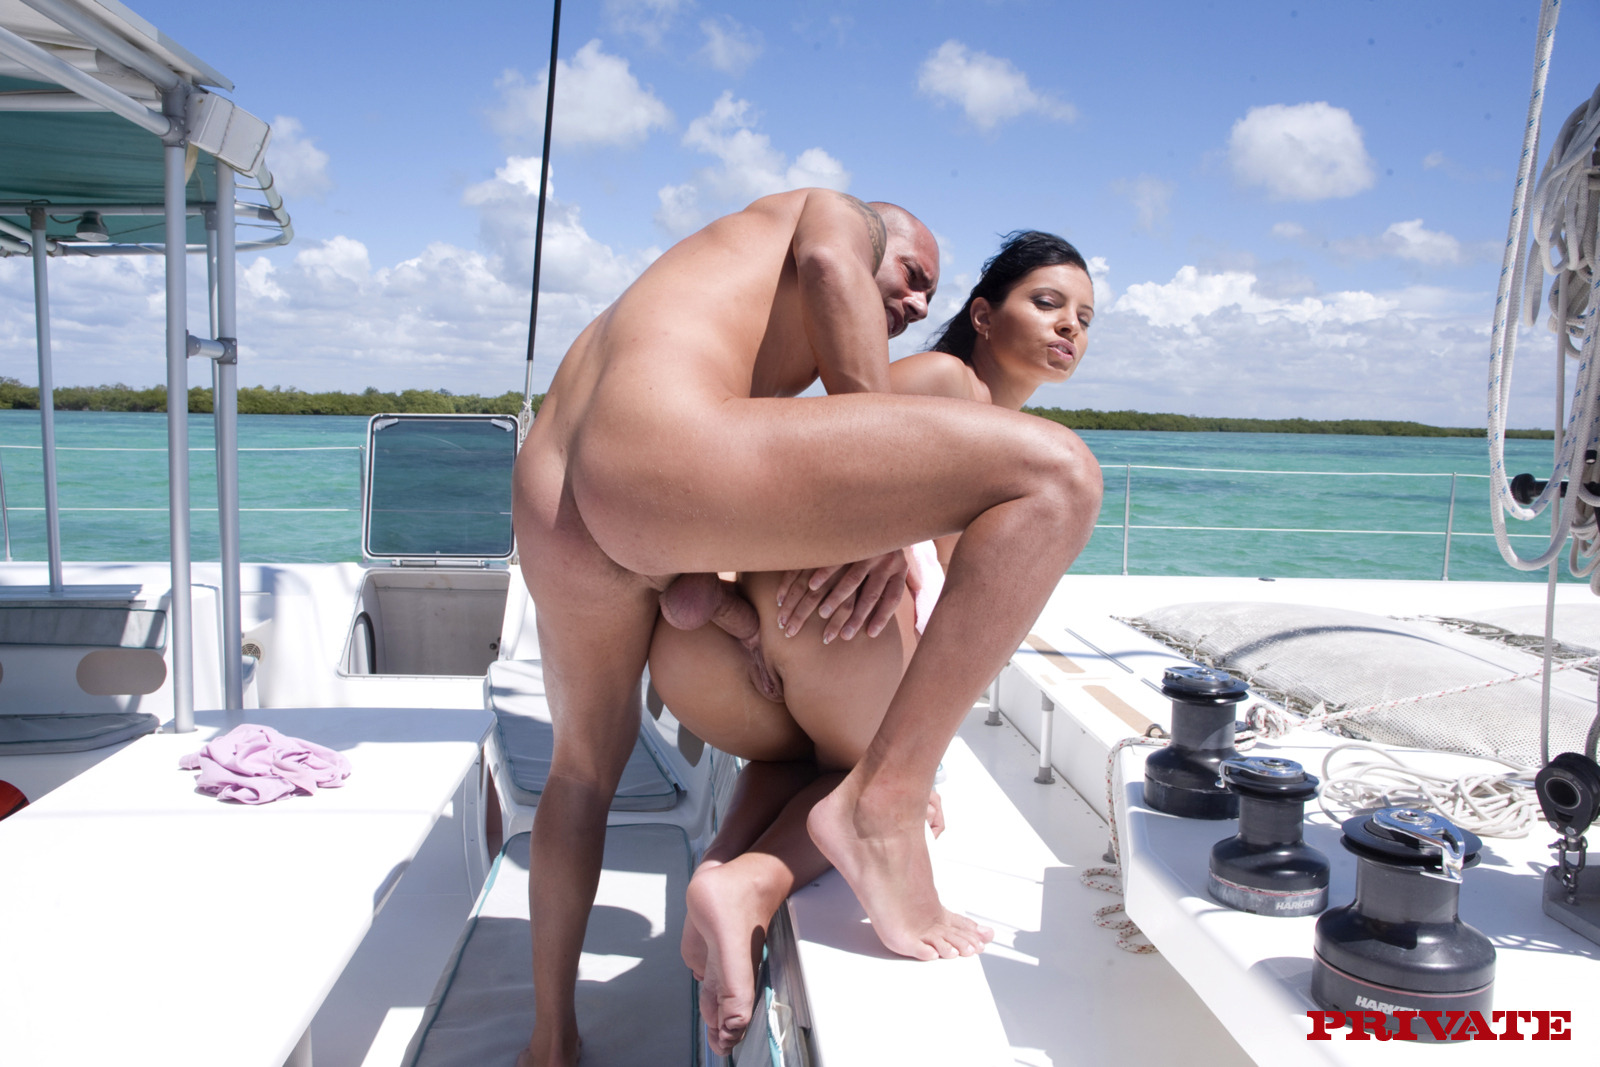 cdnhw galleries private Lucy Belle Boroka Does The Caribbean 12